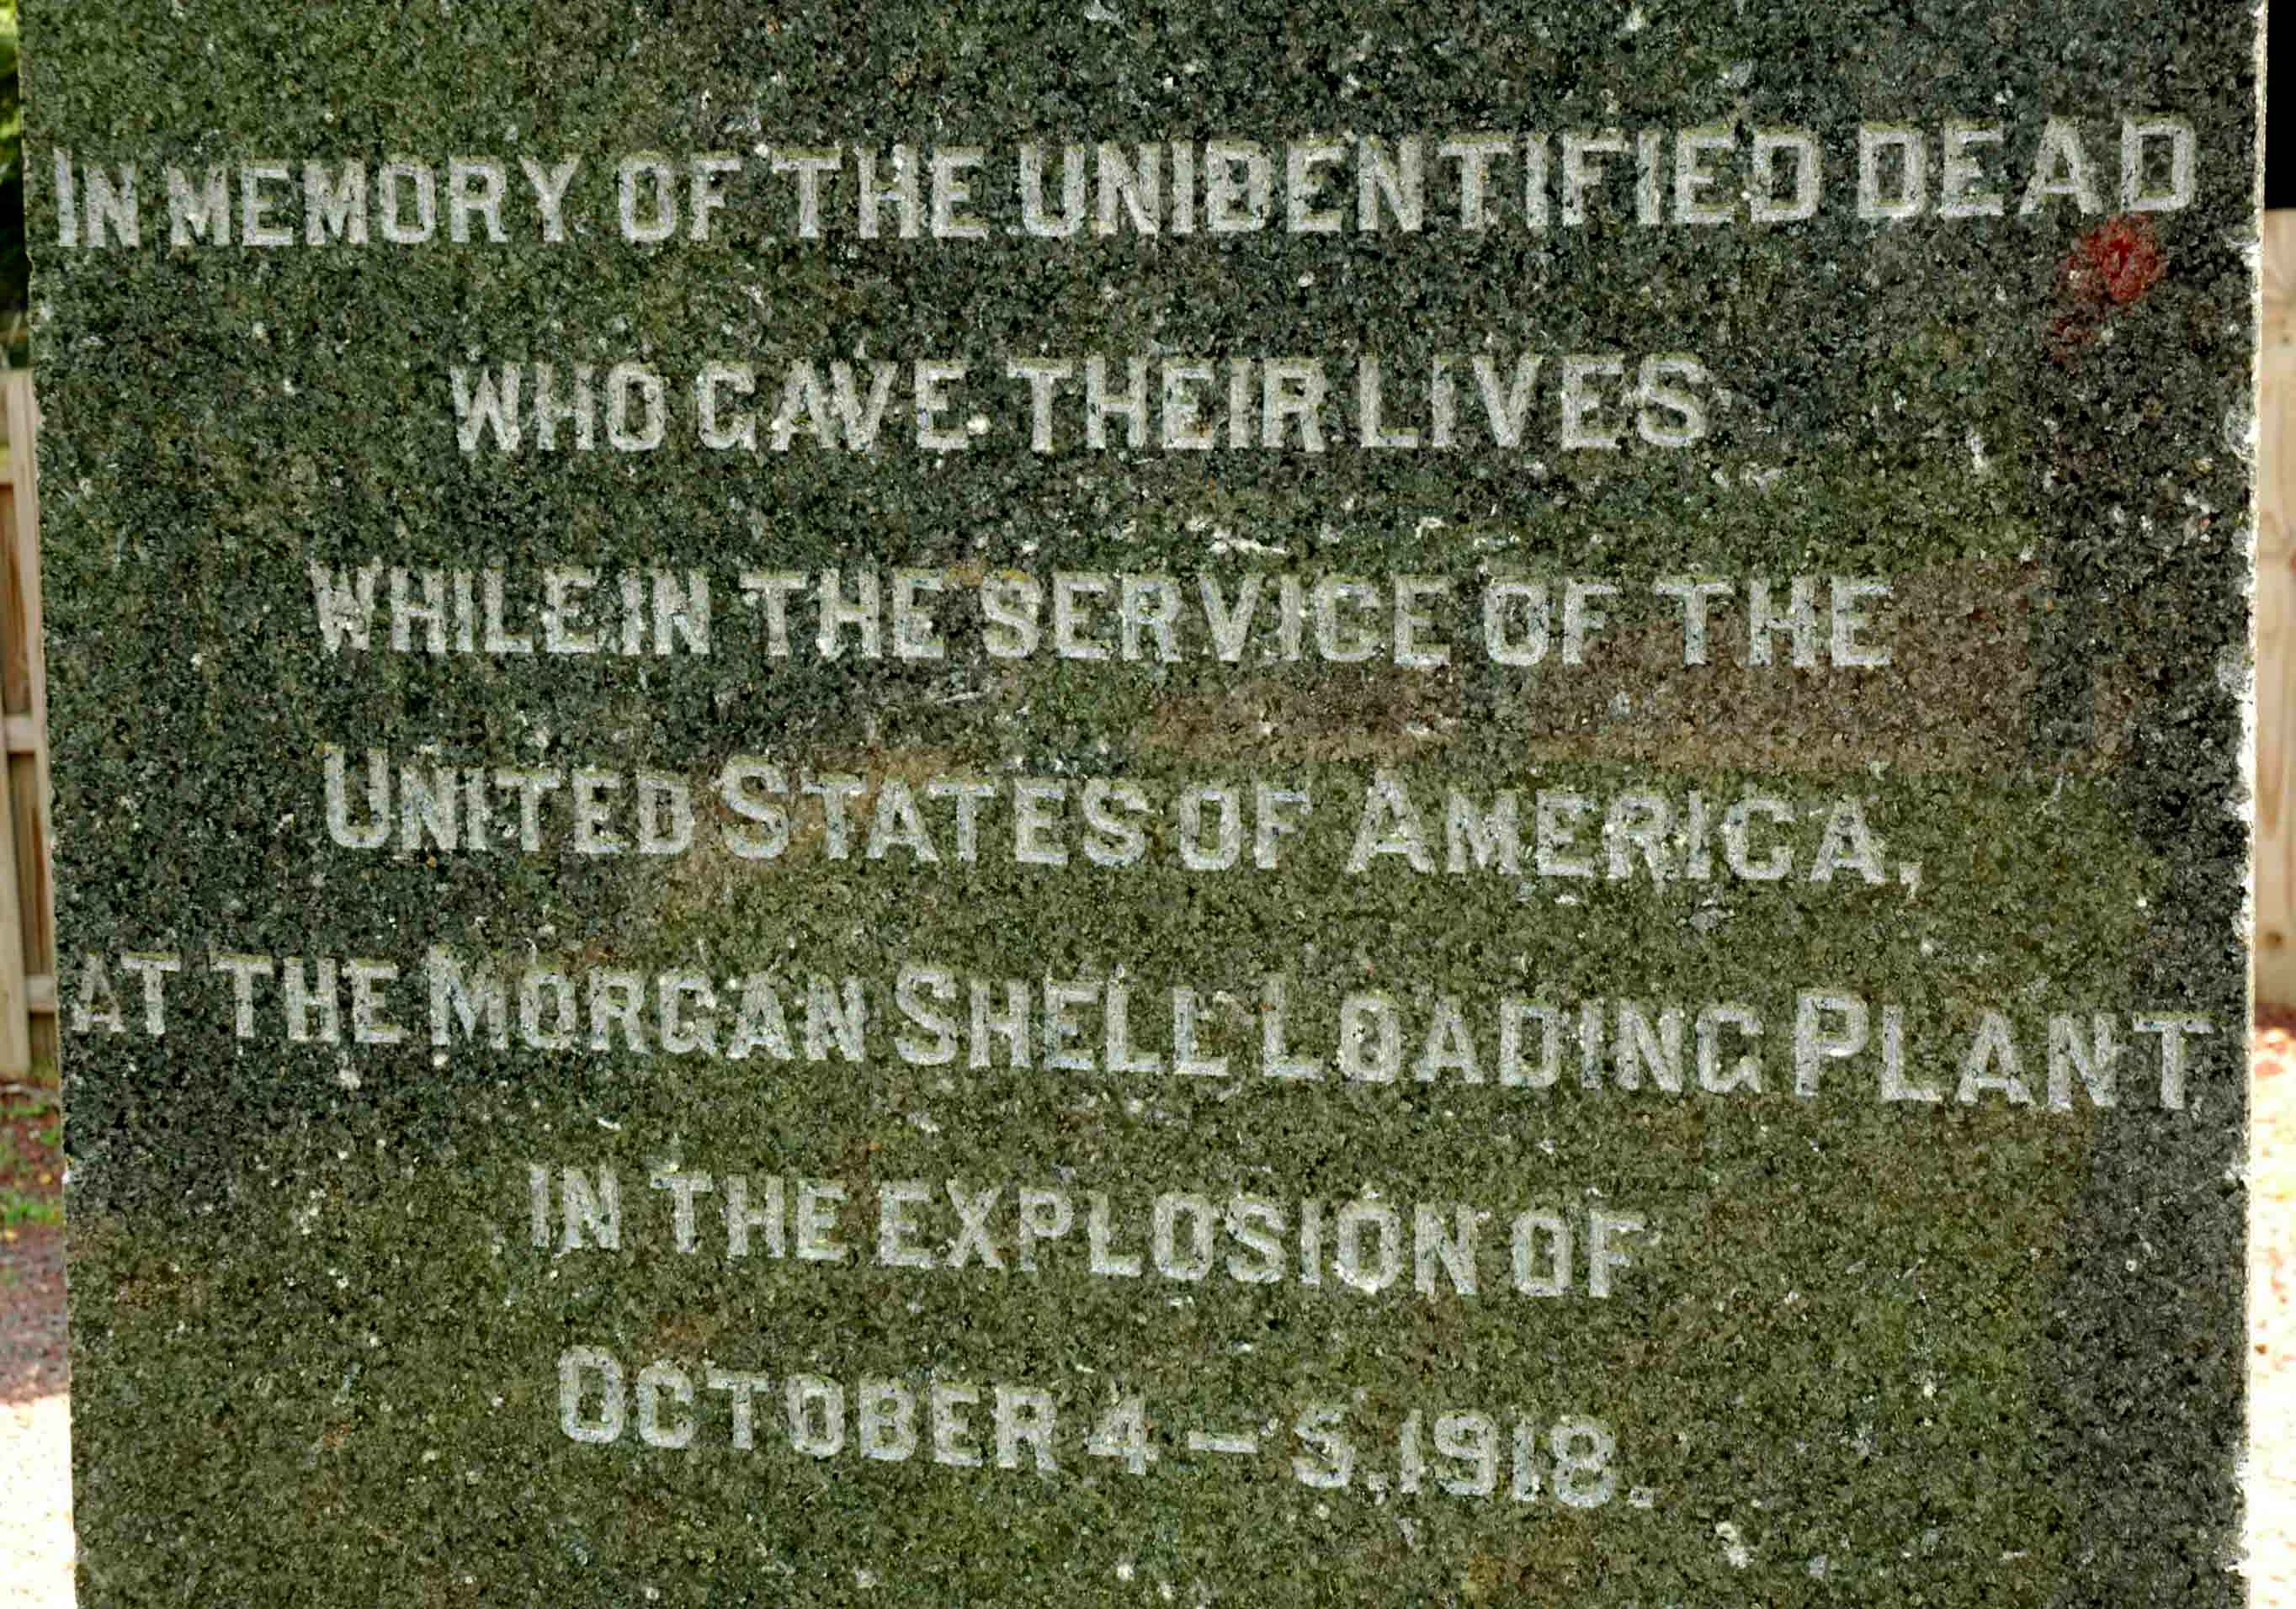 Morgan Shell Plant Memorial